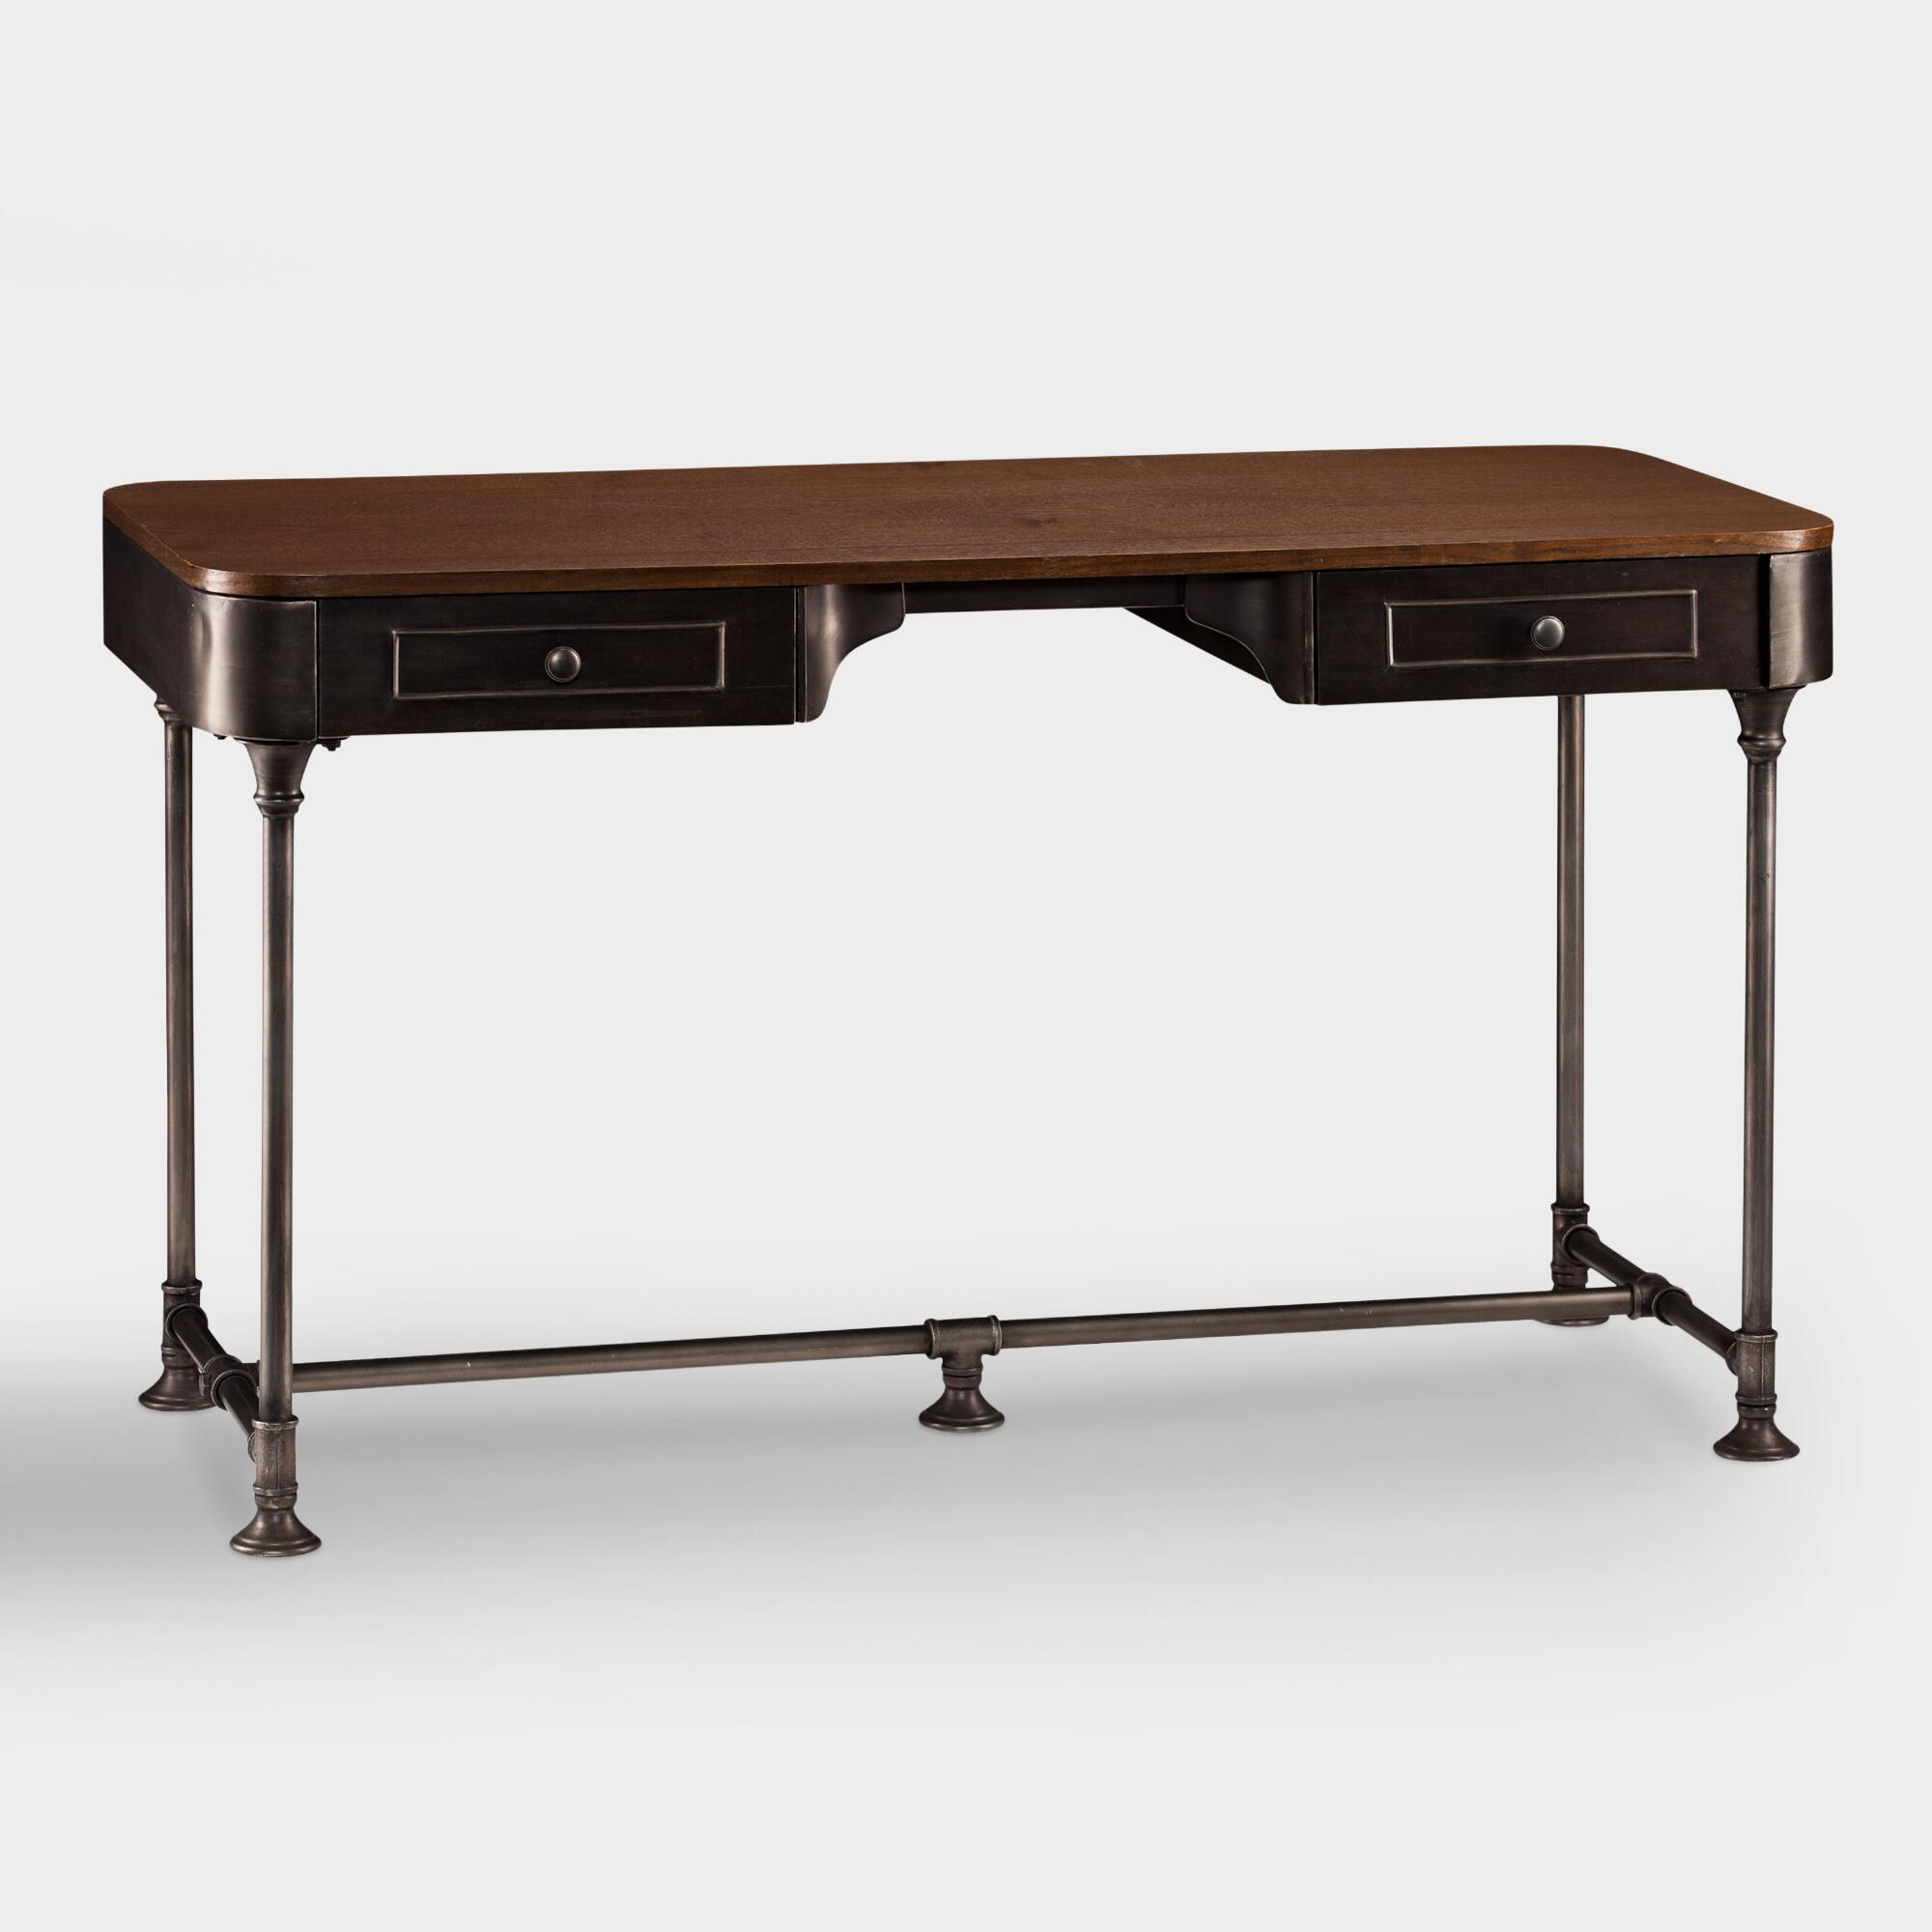 Wood and metal industrial style desk world market - Metal office desk ...